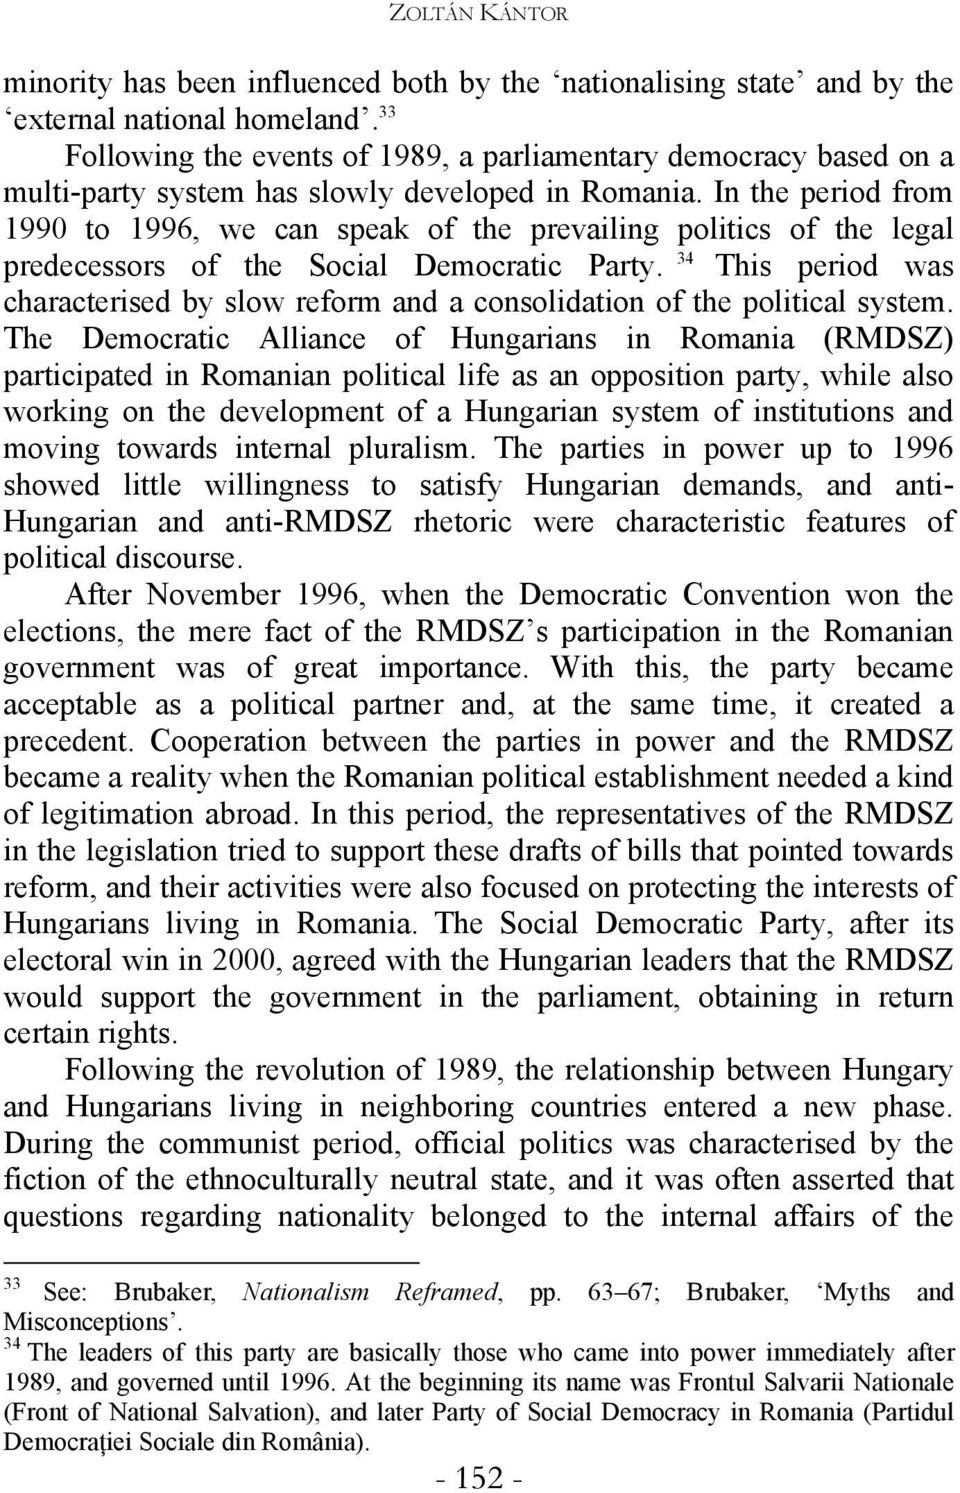 In the period from 1990 to 1996, we can speak of the prevailing politics of the legal predecessors of the Social Democratic Party.